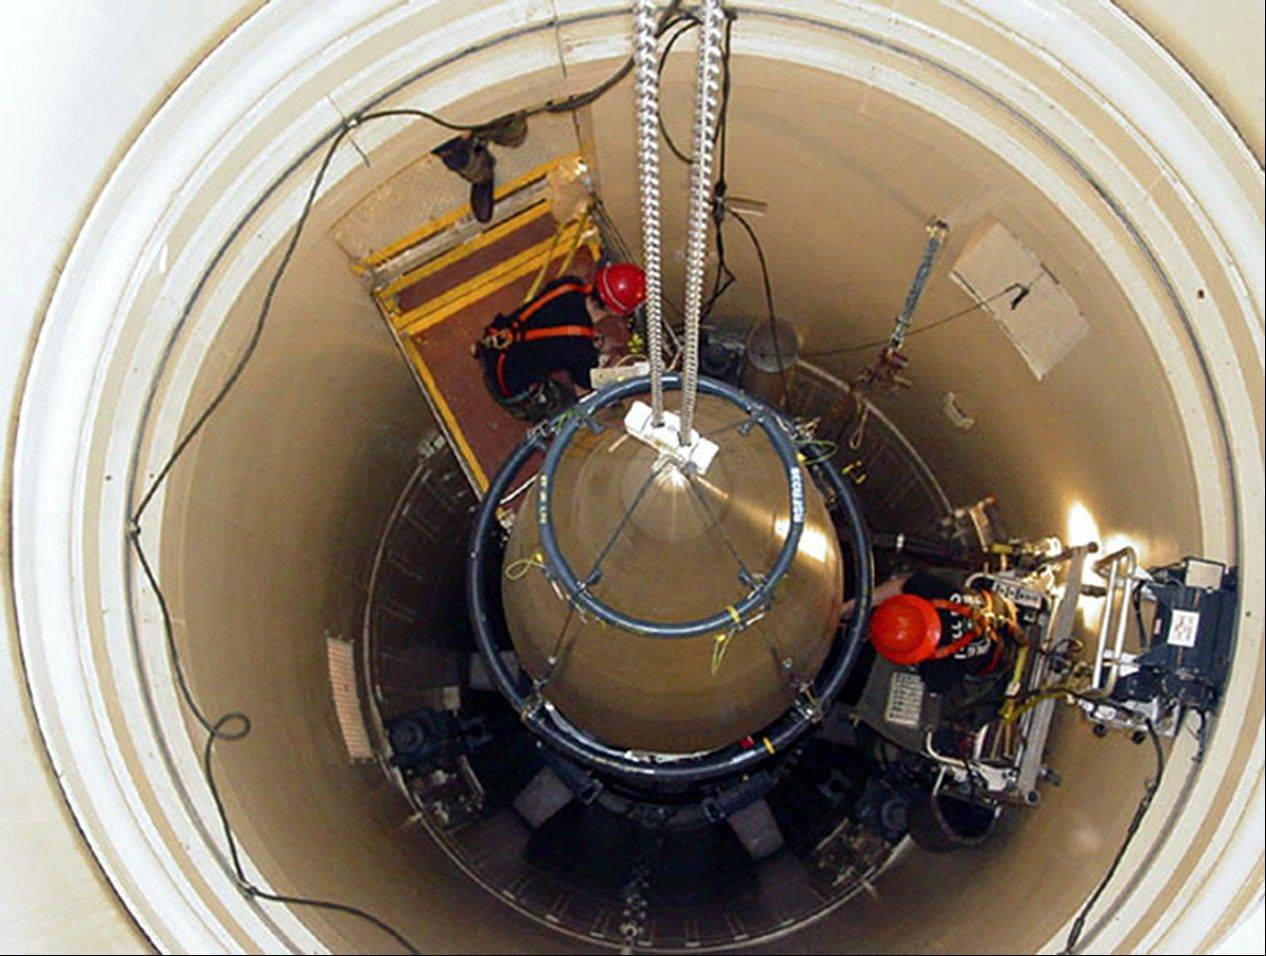 A Malmstrom Air Force Base missile maintenance team removes the upper section of an ICBM